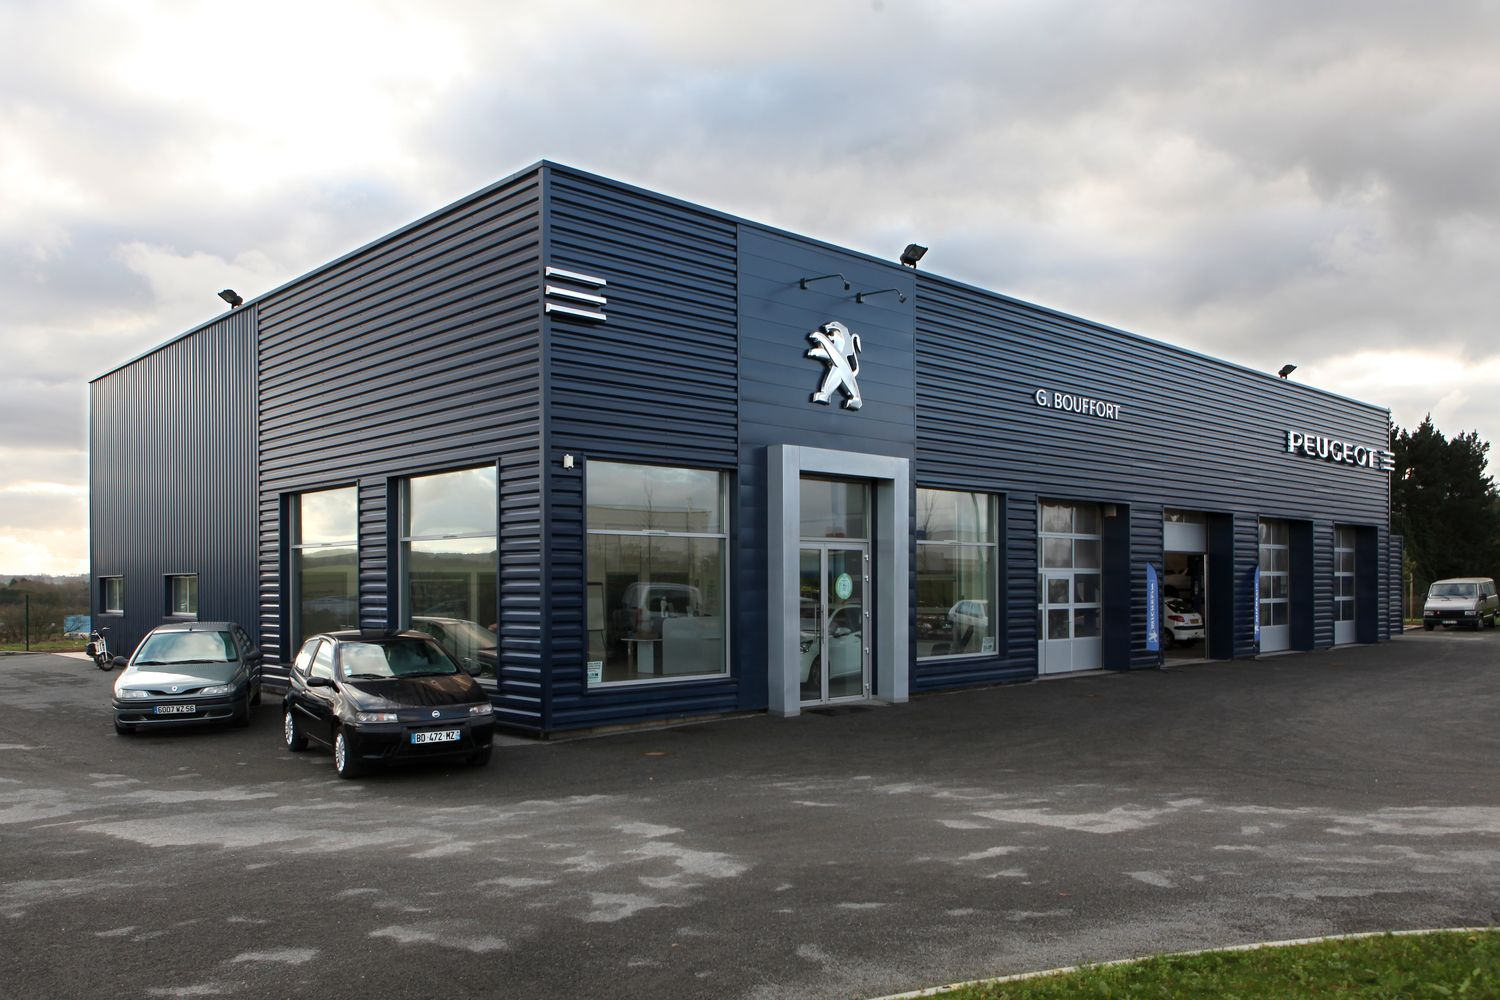 Ace ing nierie abc contractant r alisations peugeot for Garage peugeot bernay